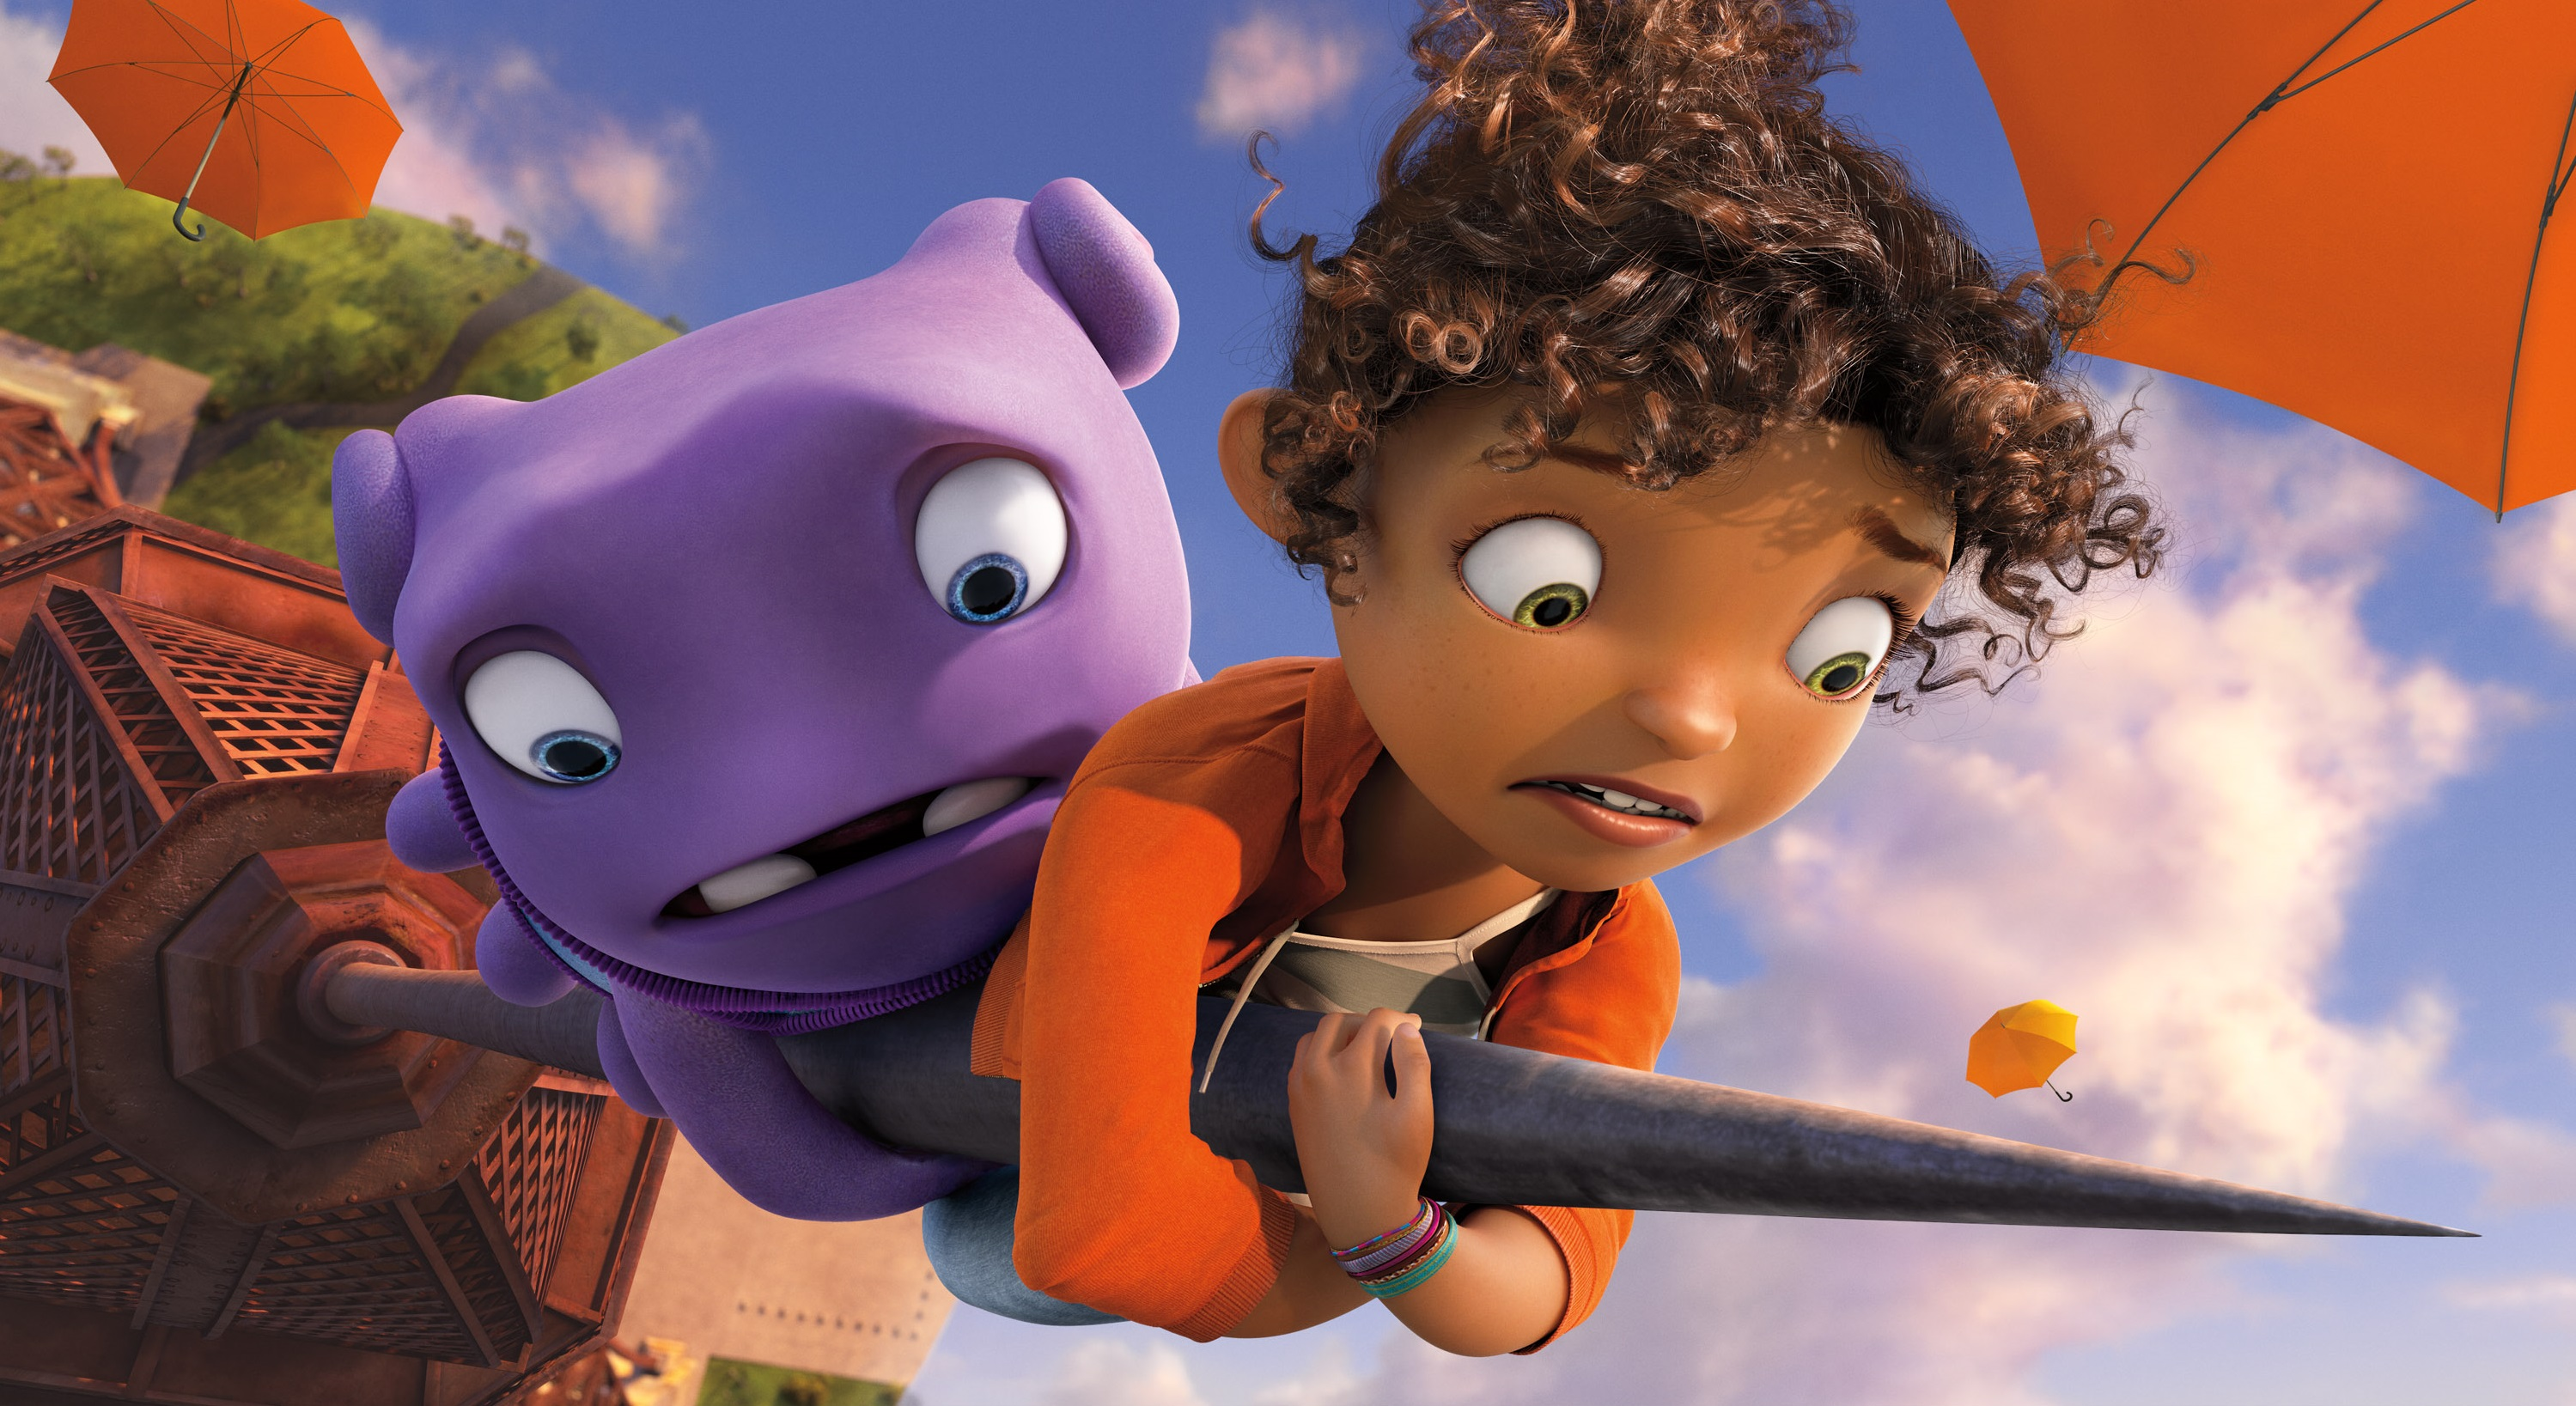 Home, the latest animated kid flick, is actually about colonialism. No, really.